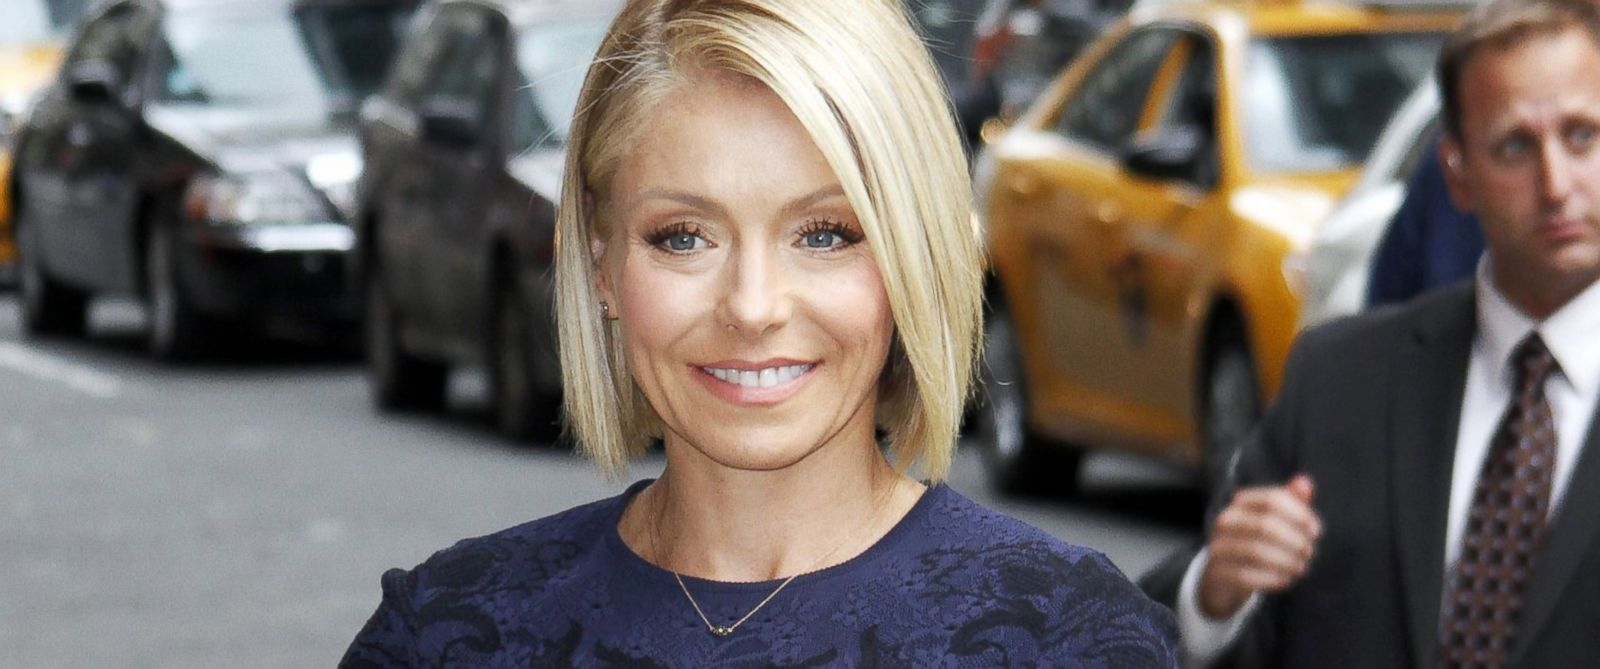 "PHOTO: Kelly Ripa arrives for the ""Late Show with David Letterman"" at Ed Sullivan Theater, Sept. 24, 2014, in New York City."